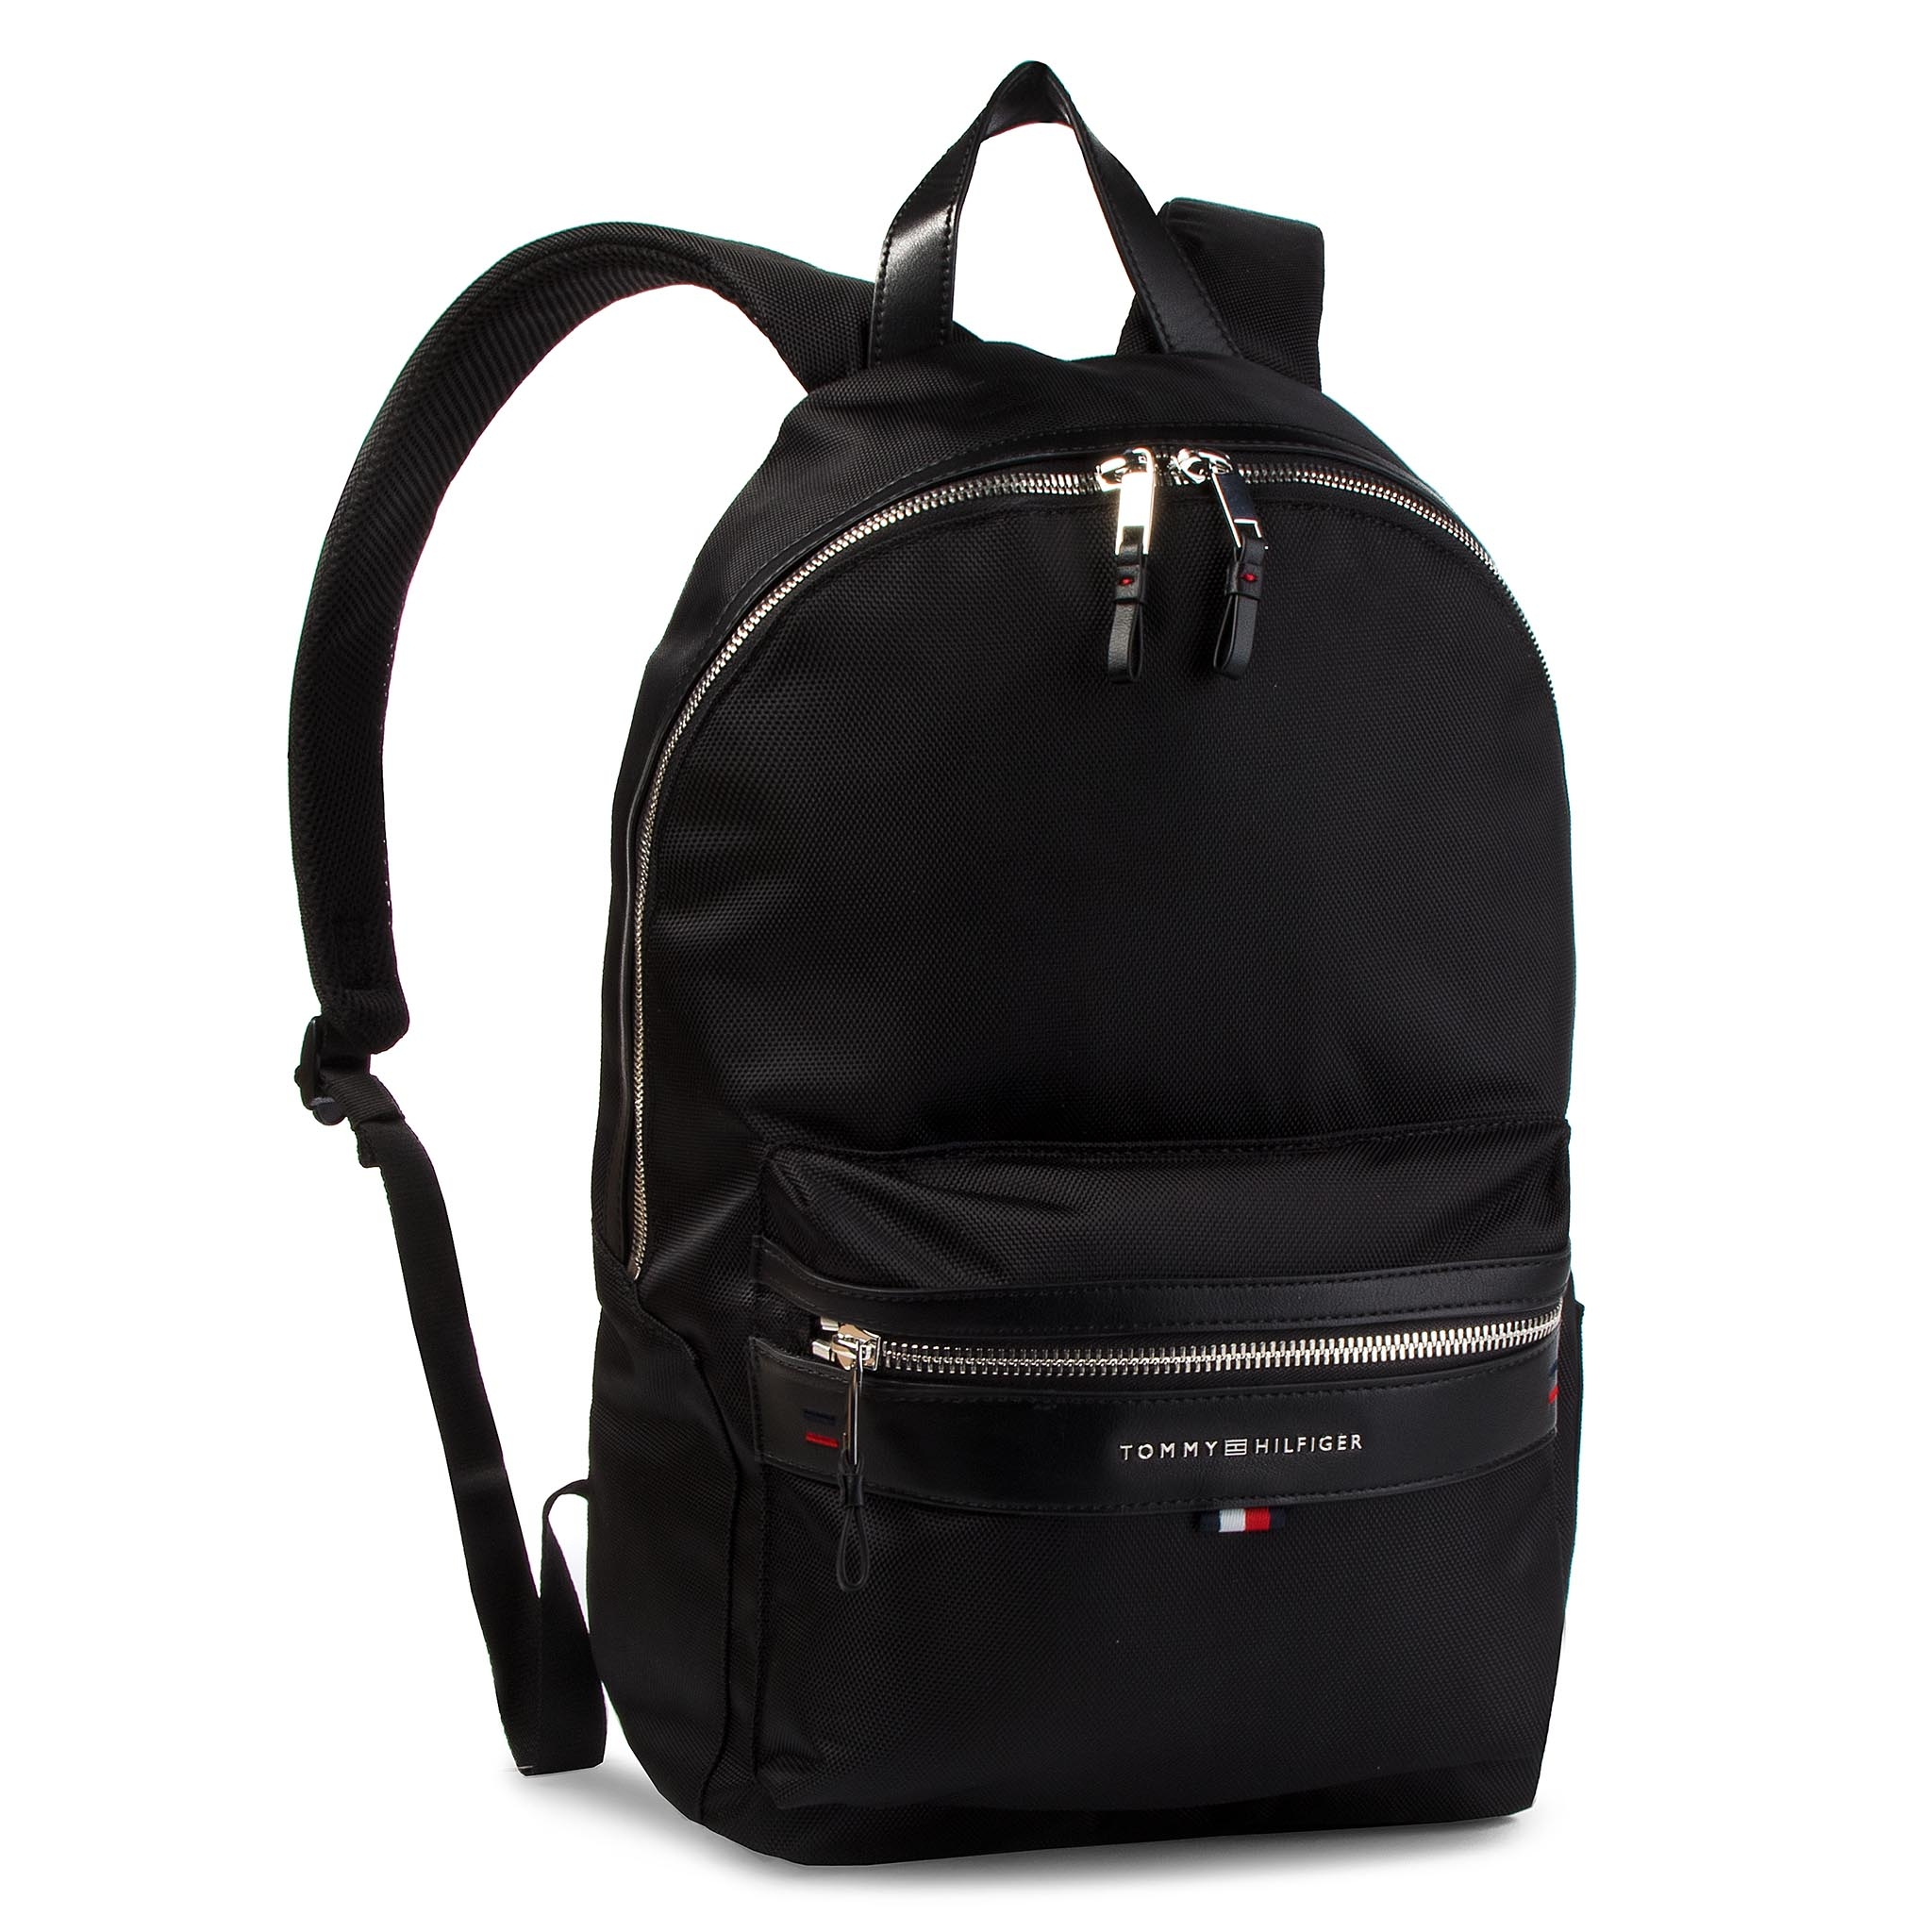 6db4934d6a Ruksak TOMMY HILFIGER - Elevated Backpack AM0AM02963 002 - Glami.sk